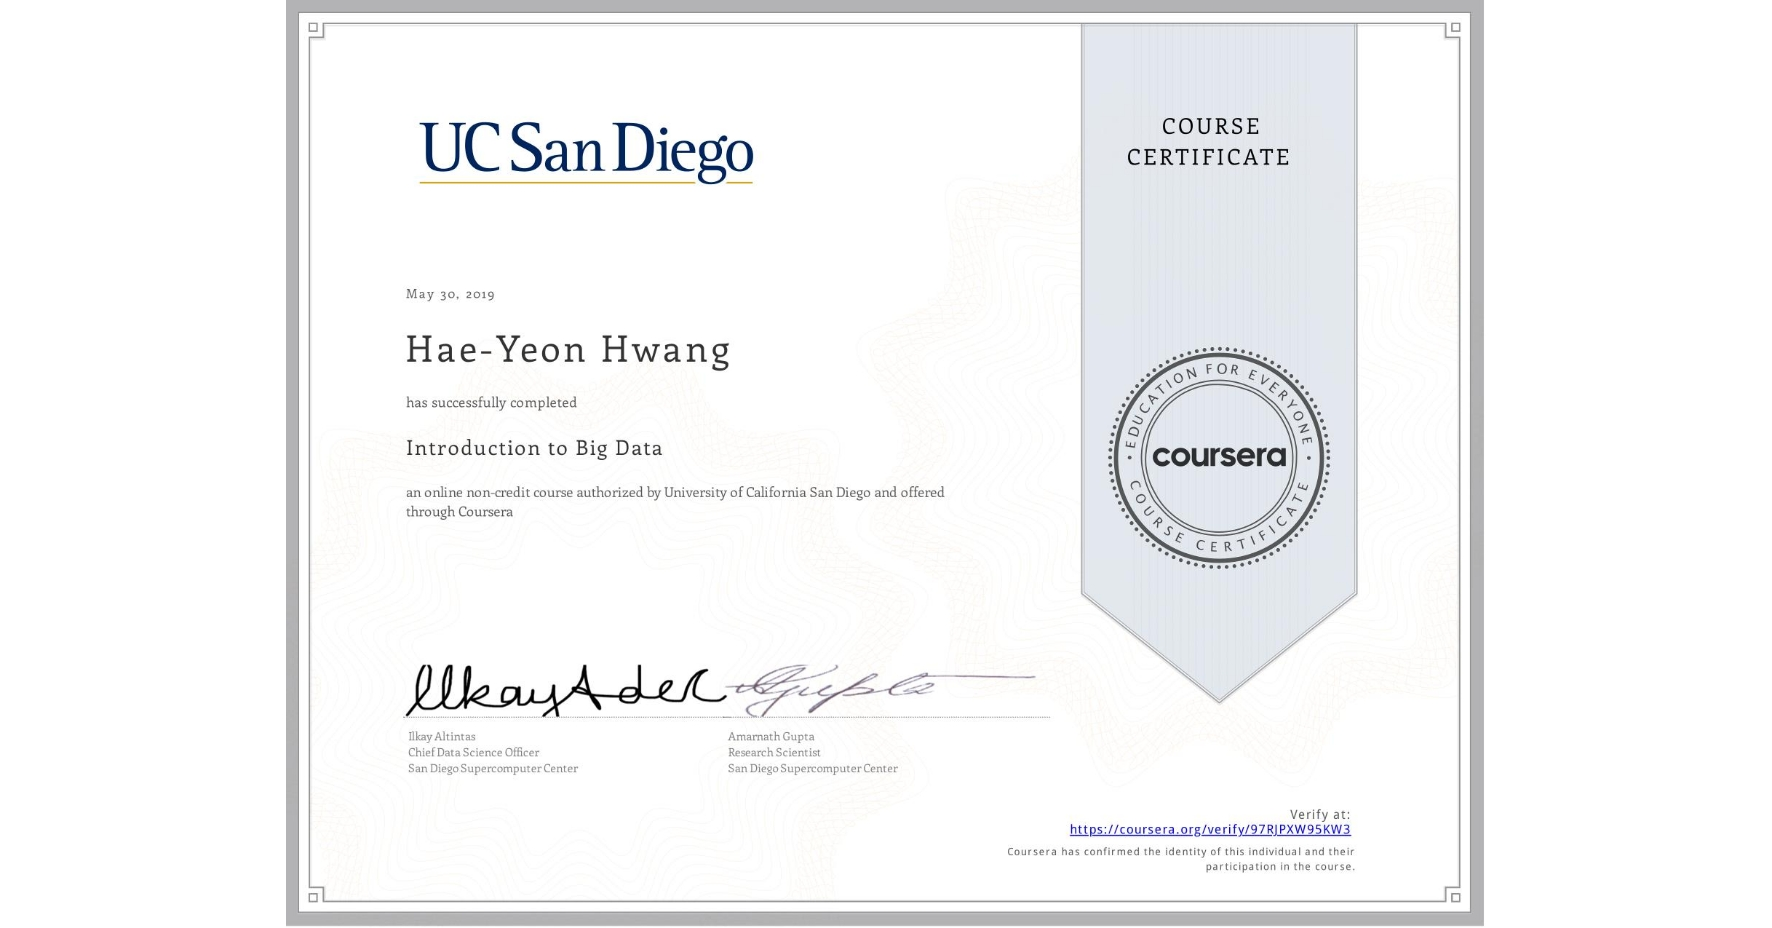 View certificate for Hae-Yeon Hwang, Introduction to Big Data, an online non-credit course authorized by University of California San Diego and offered through Coursera